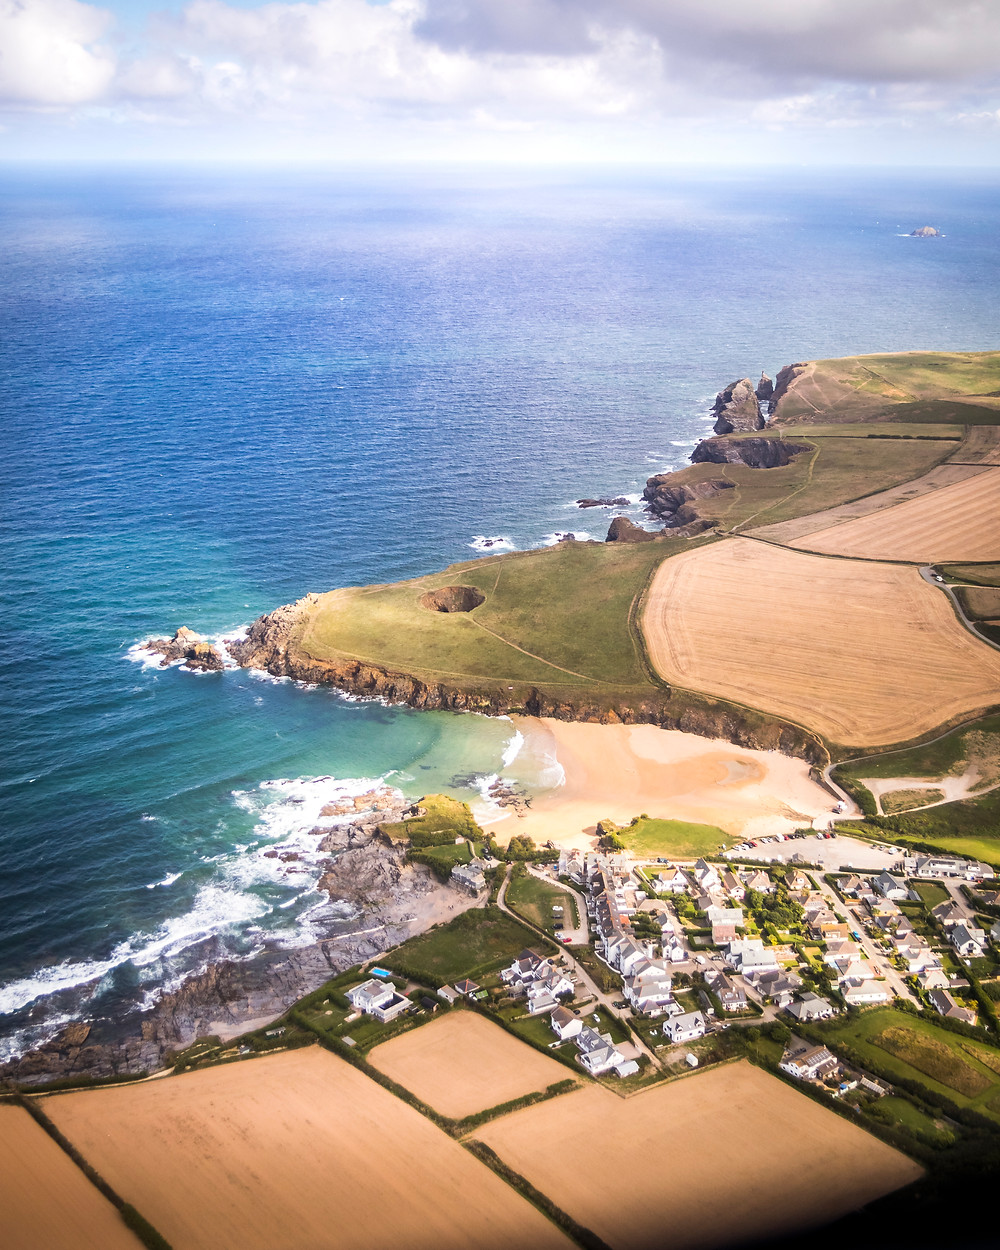 Aerial View Of Trevone Bay, Cornwall From The Air